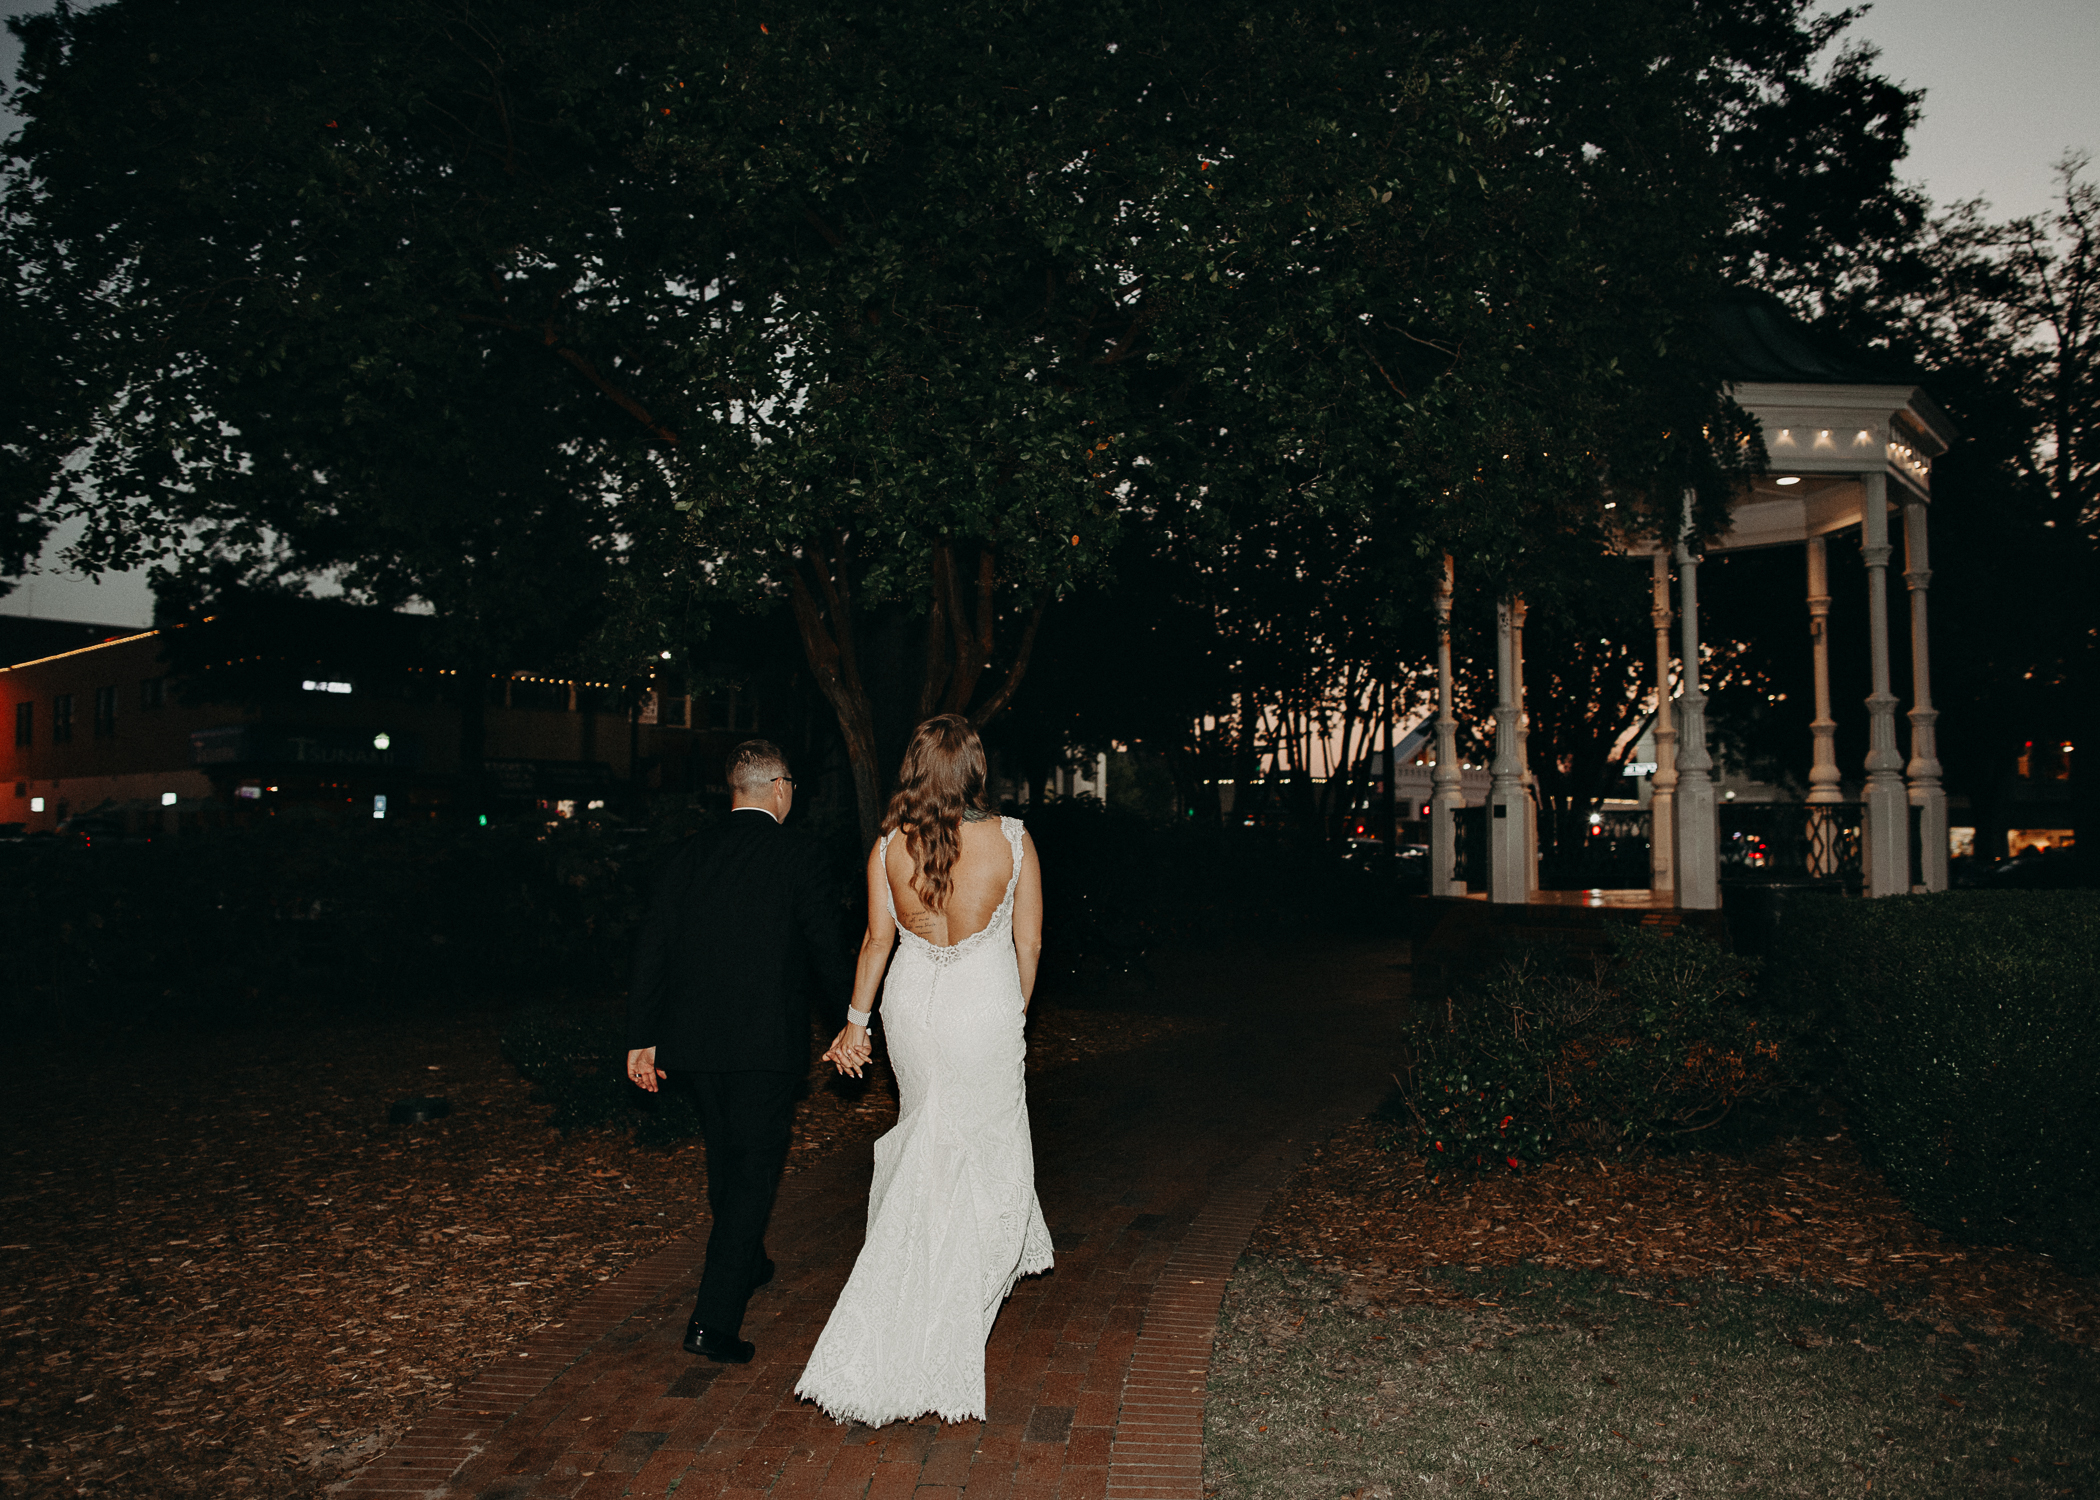 Allison and Billy - earlsmithstrand_marietta square georgia wedding photography-84.jpg